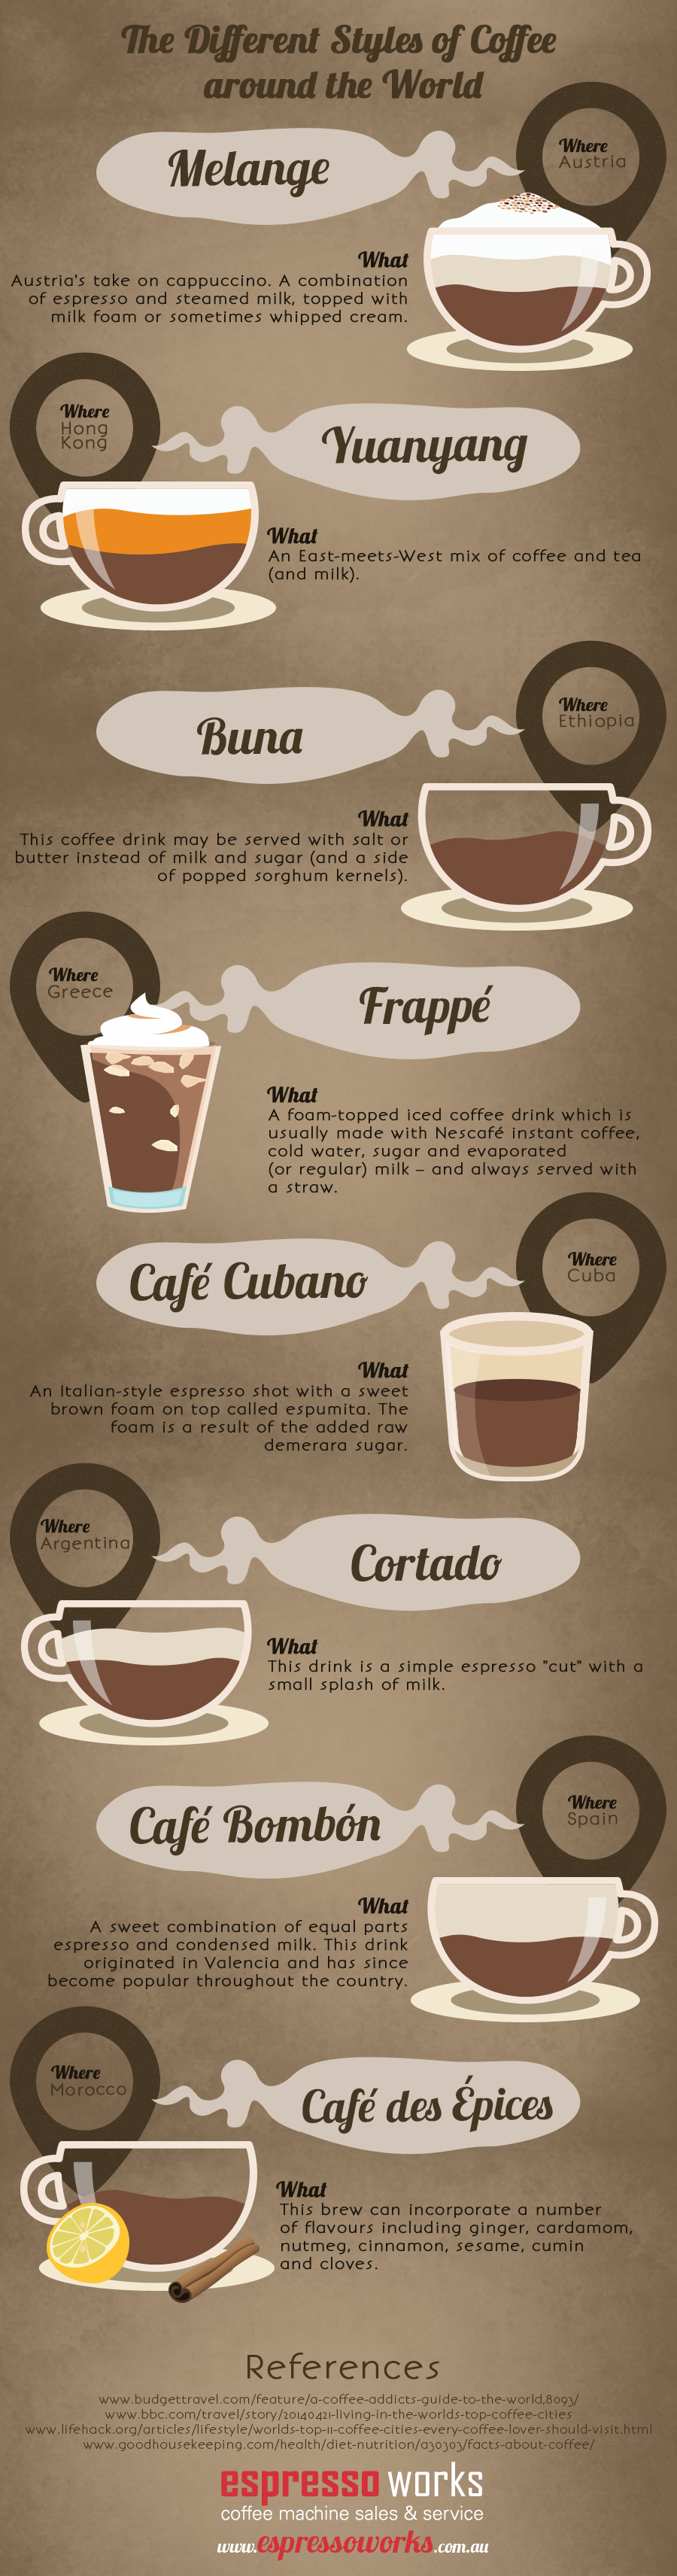 Infographic showing coffee styles around the world